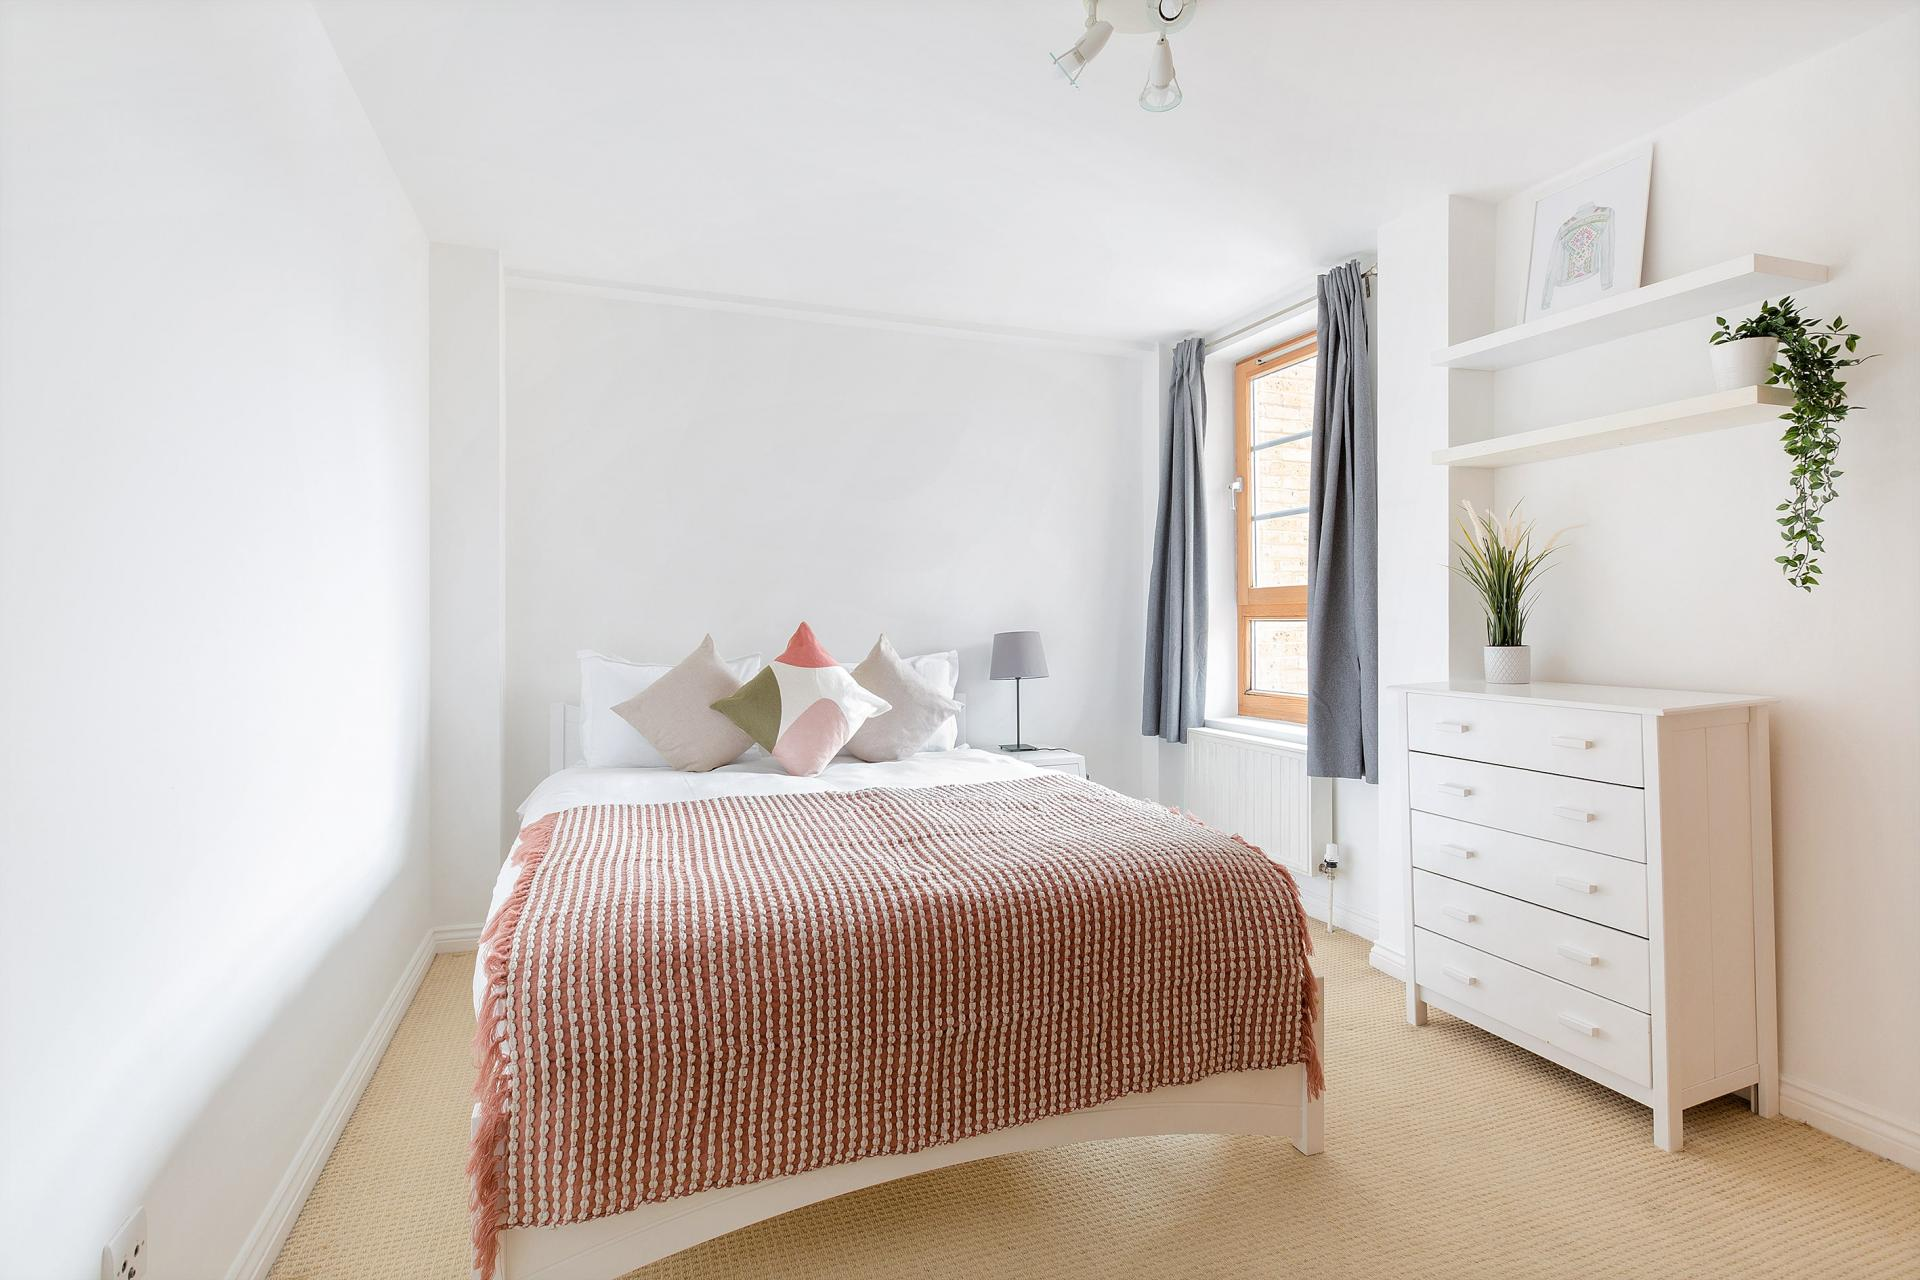 Bedroom at Serenity Apartment, Whitechapel, London - Citybase Apartments